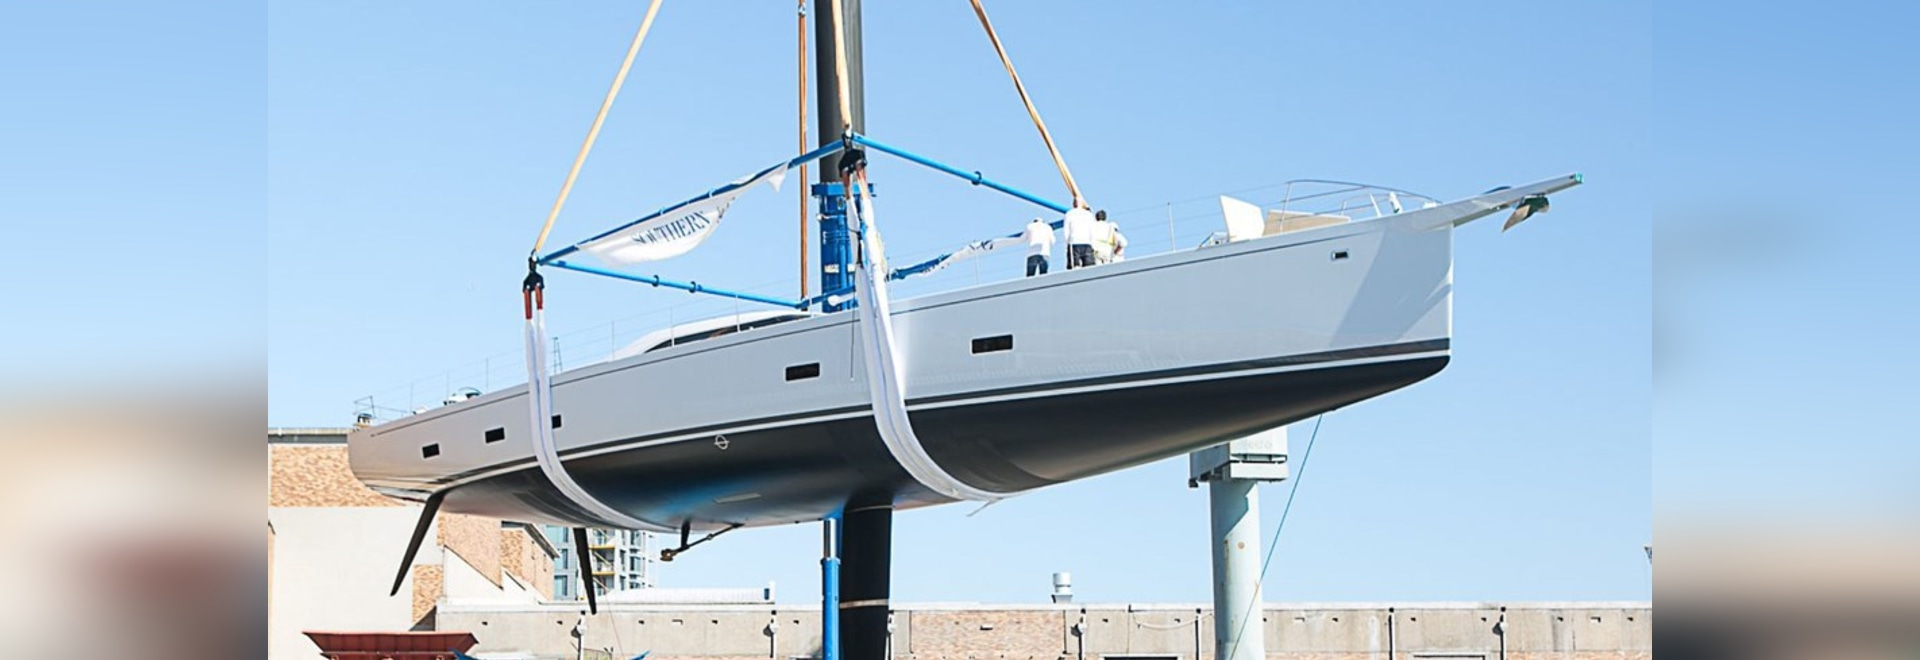 Southern Wind launches 35m sailing yacht Power of 2